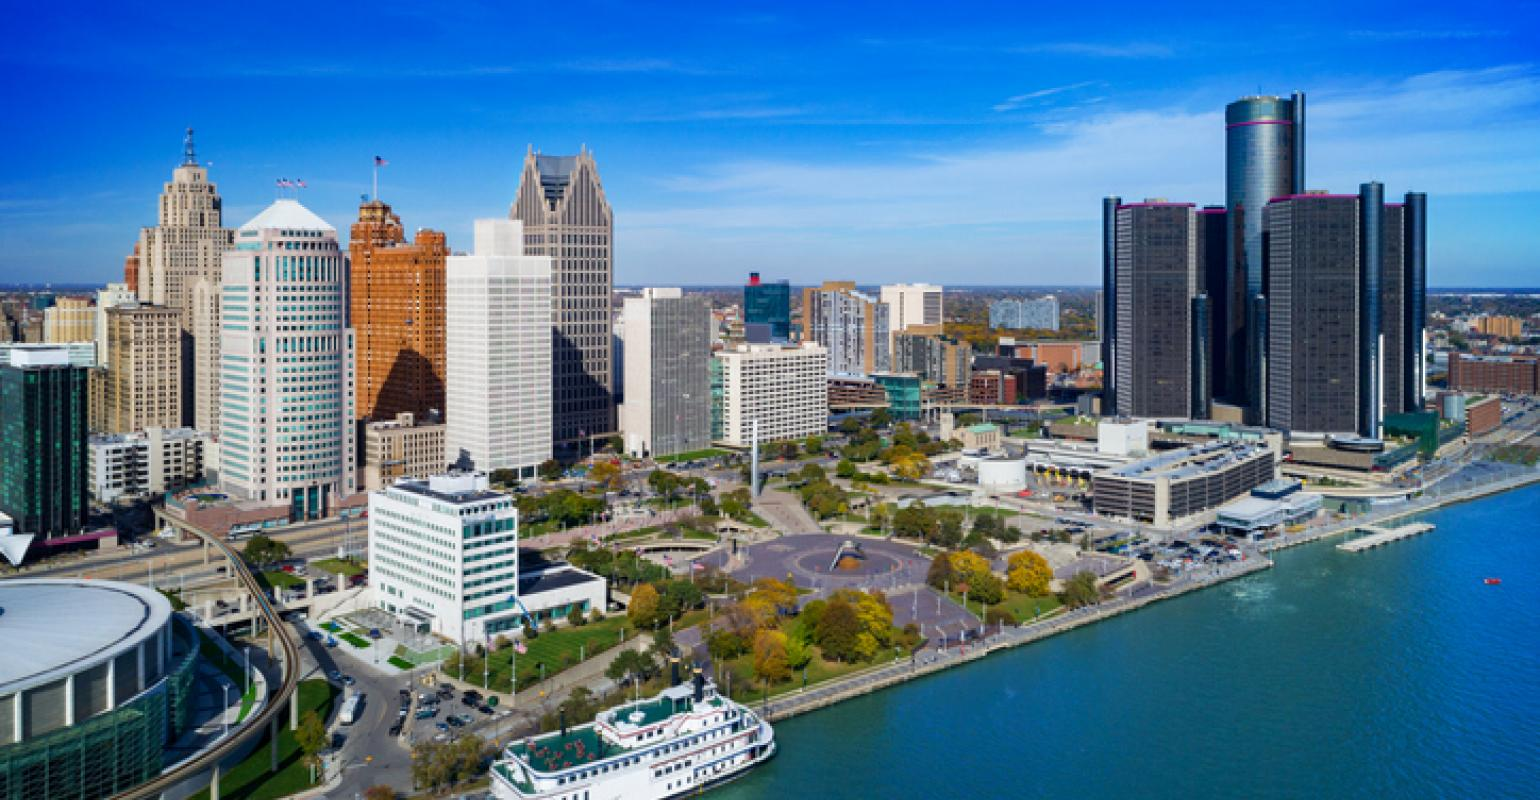 Best Special Honeymoon Travel Places in Detroit?